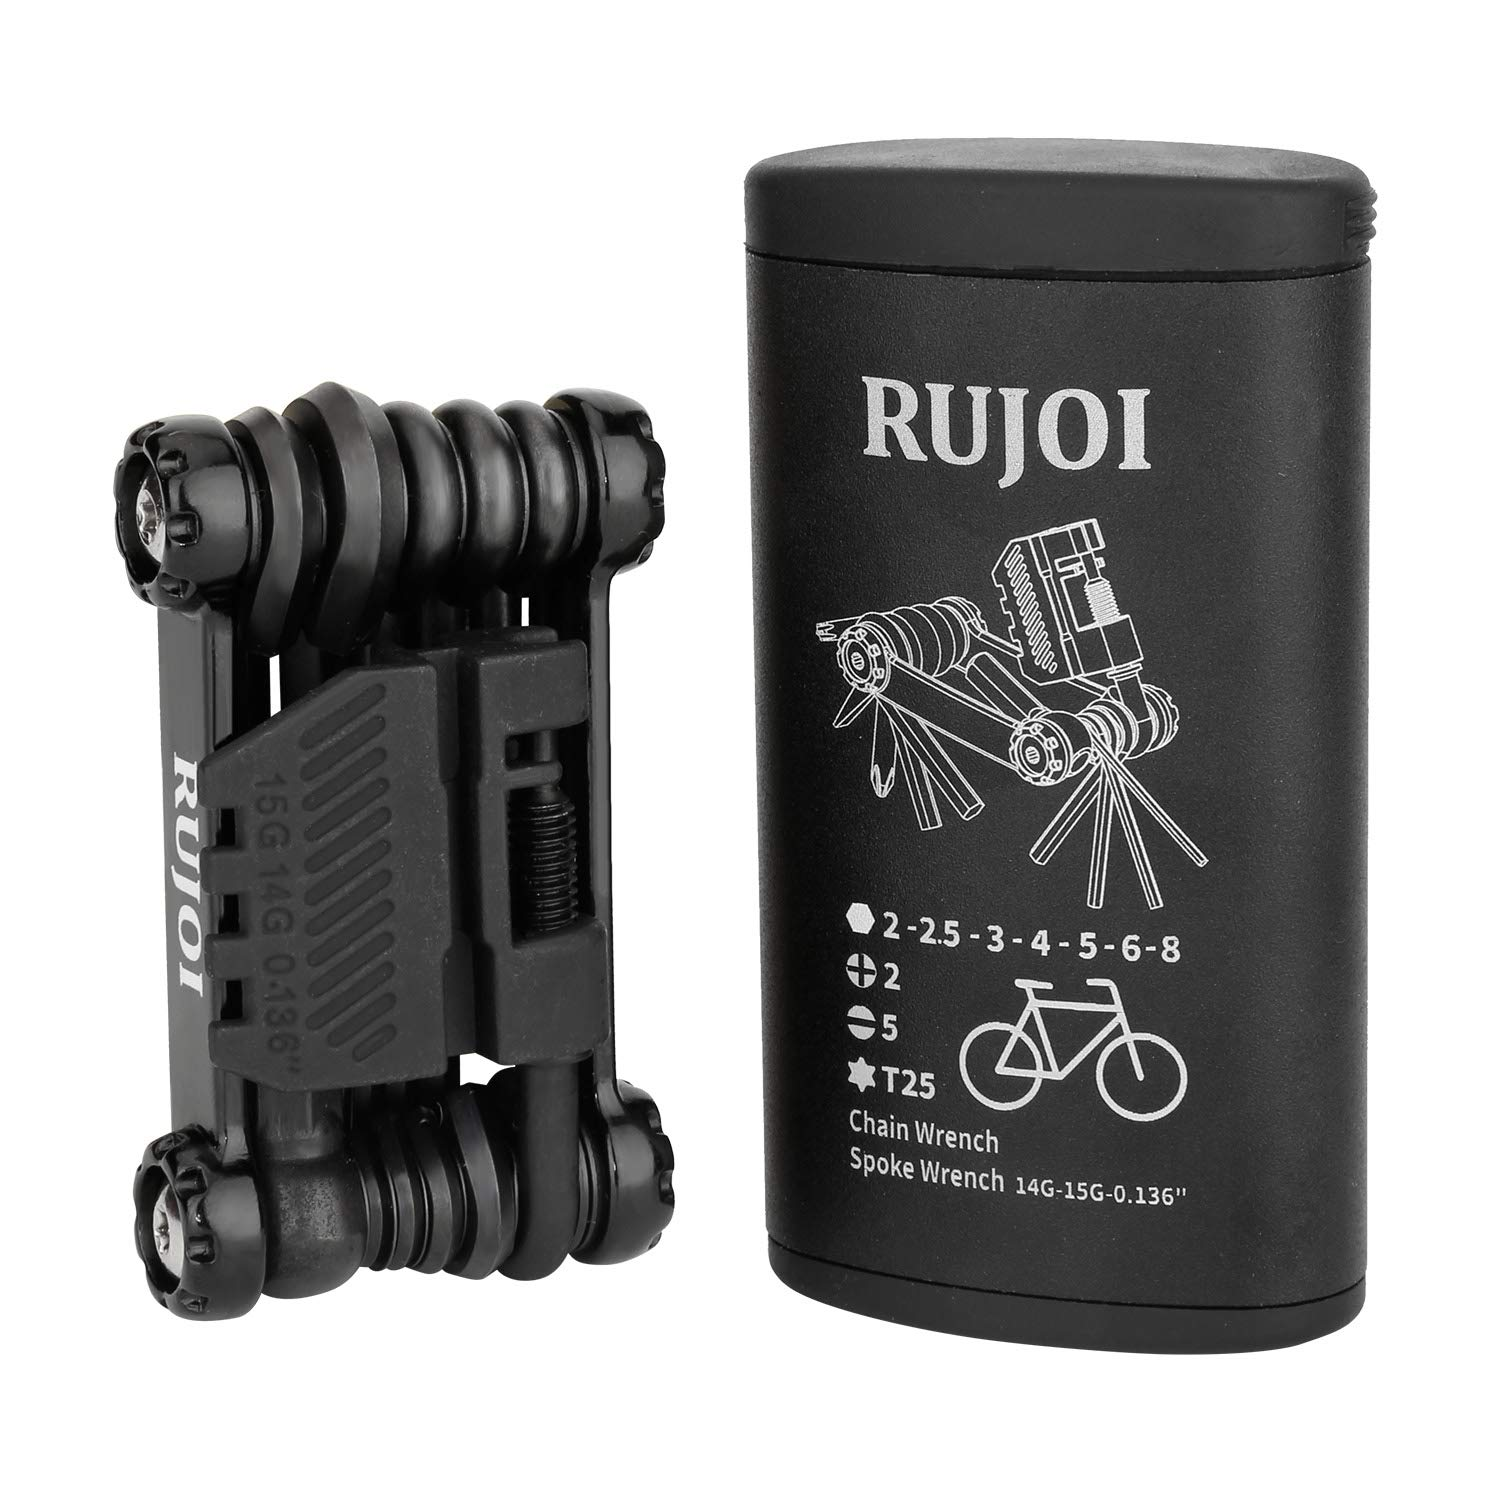 RUJOI Bike Multi Tool with Chain Braker,Bike Tools All in one kit Set with Allen Wrench,Screw,Spoke Wrench,Torx,Chain Broker for Mountain Aluminum Bag Road Bicycle Repair